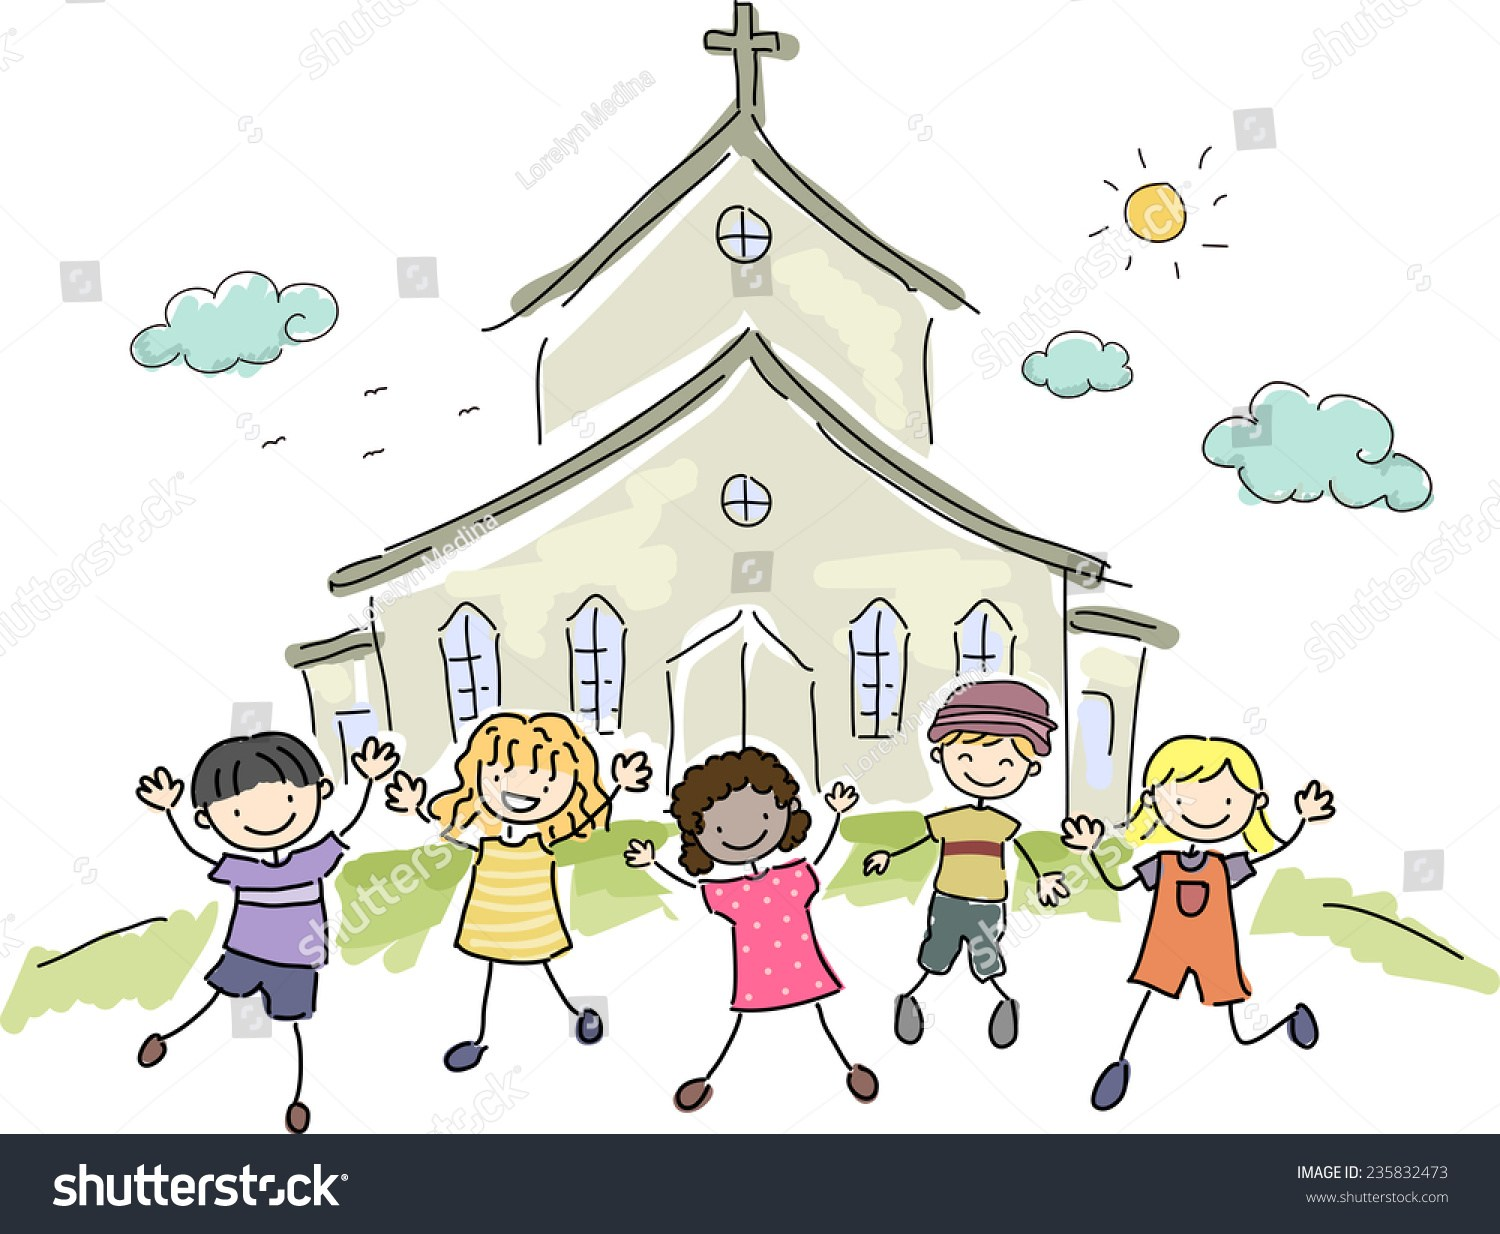 Children going to church clipart 8 » Clipart Portal.